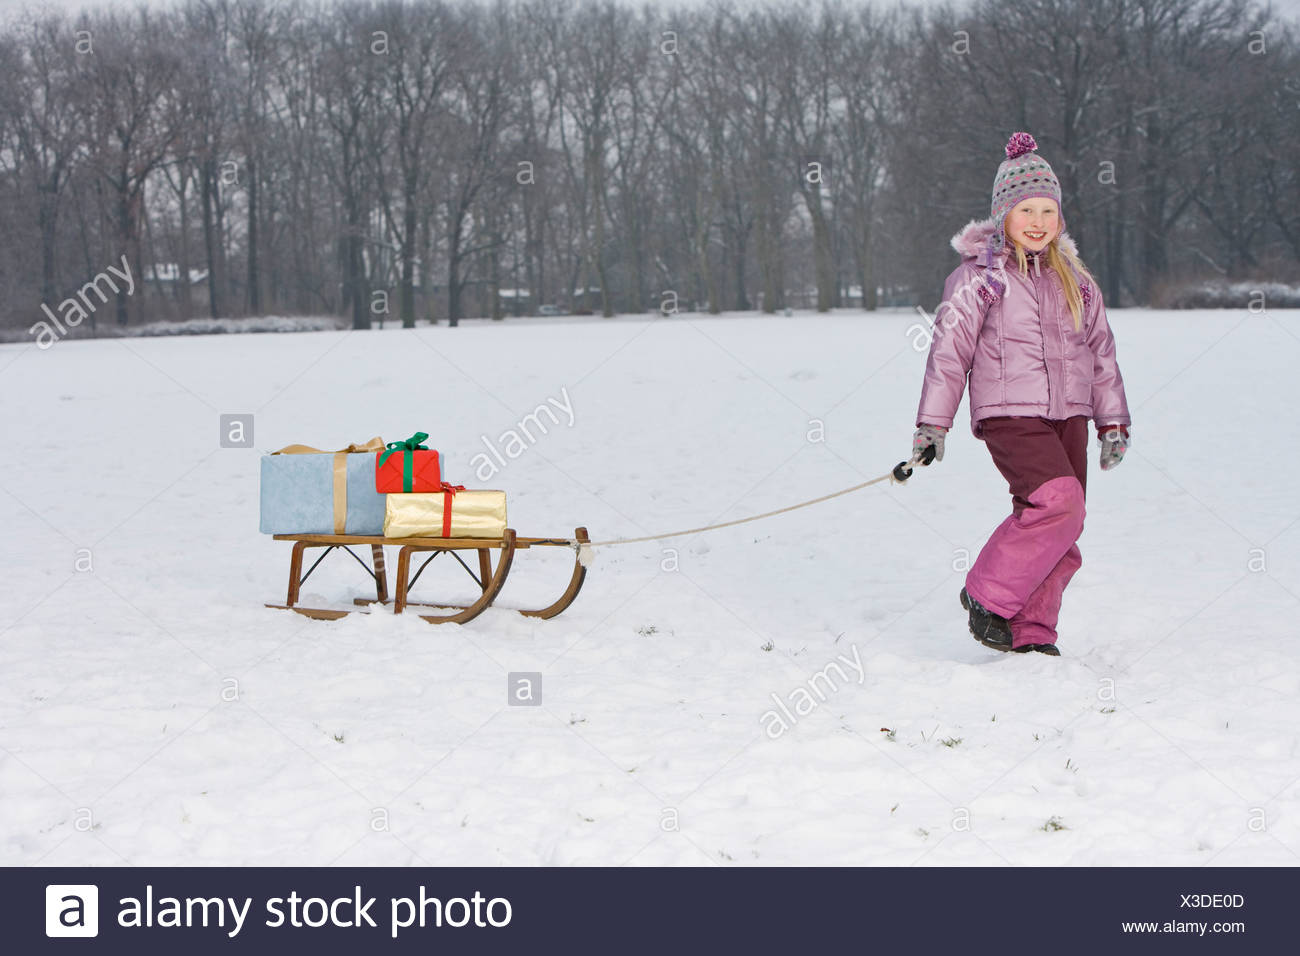 A young girl pulling a sled with presents on it - Stock Image